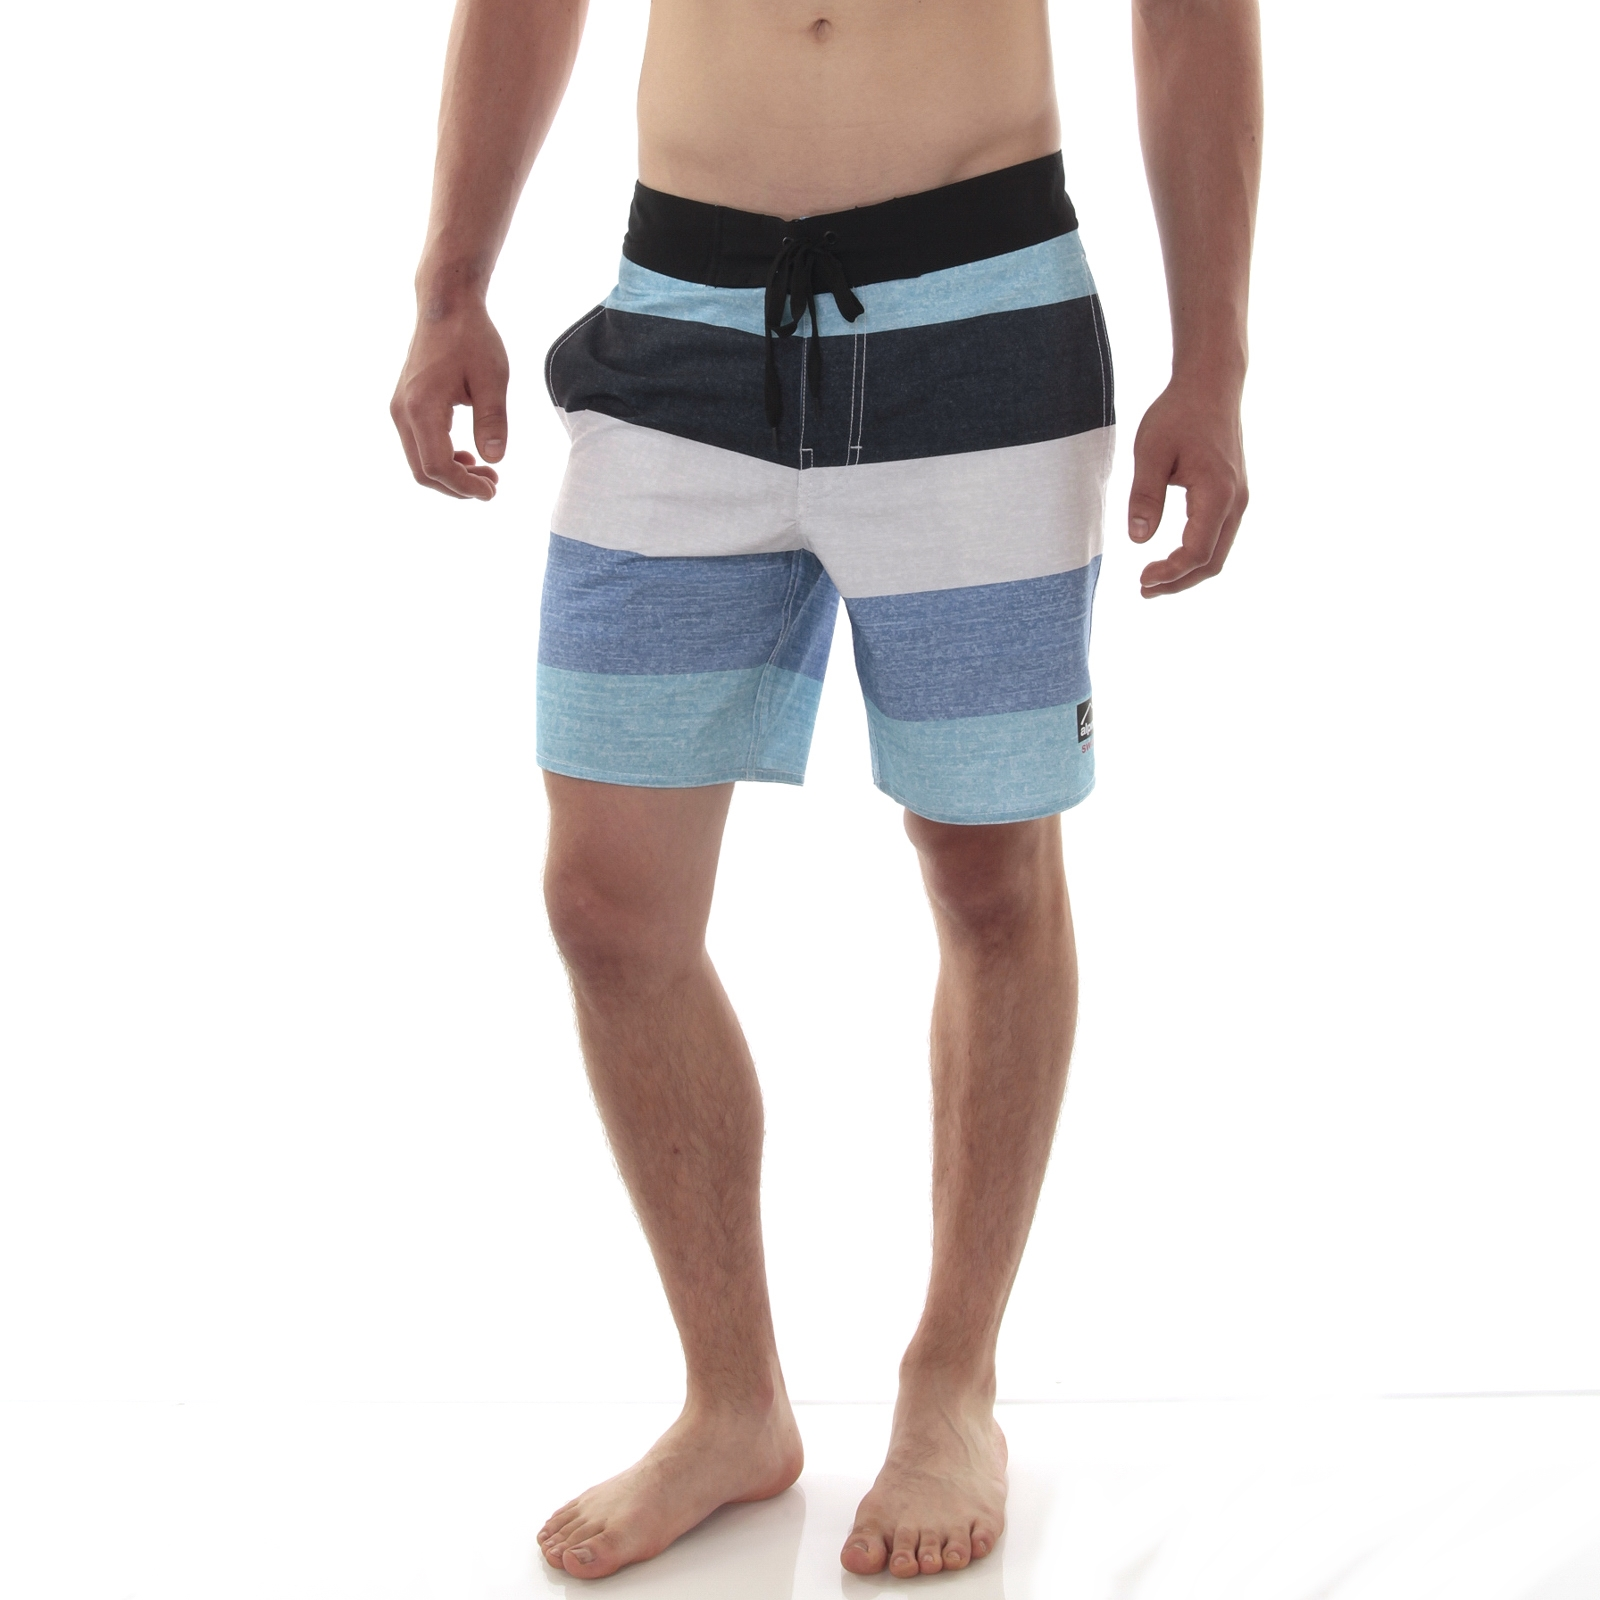 Why do you need mens board shorts?